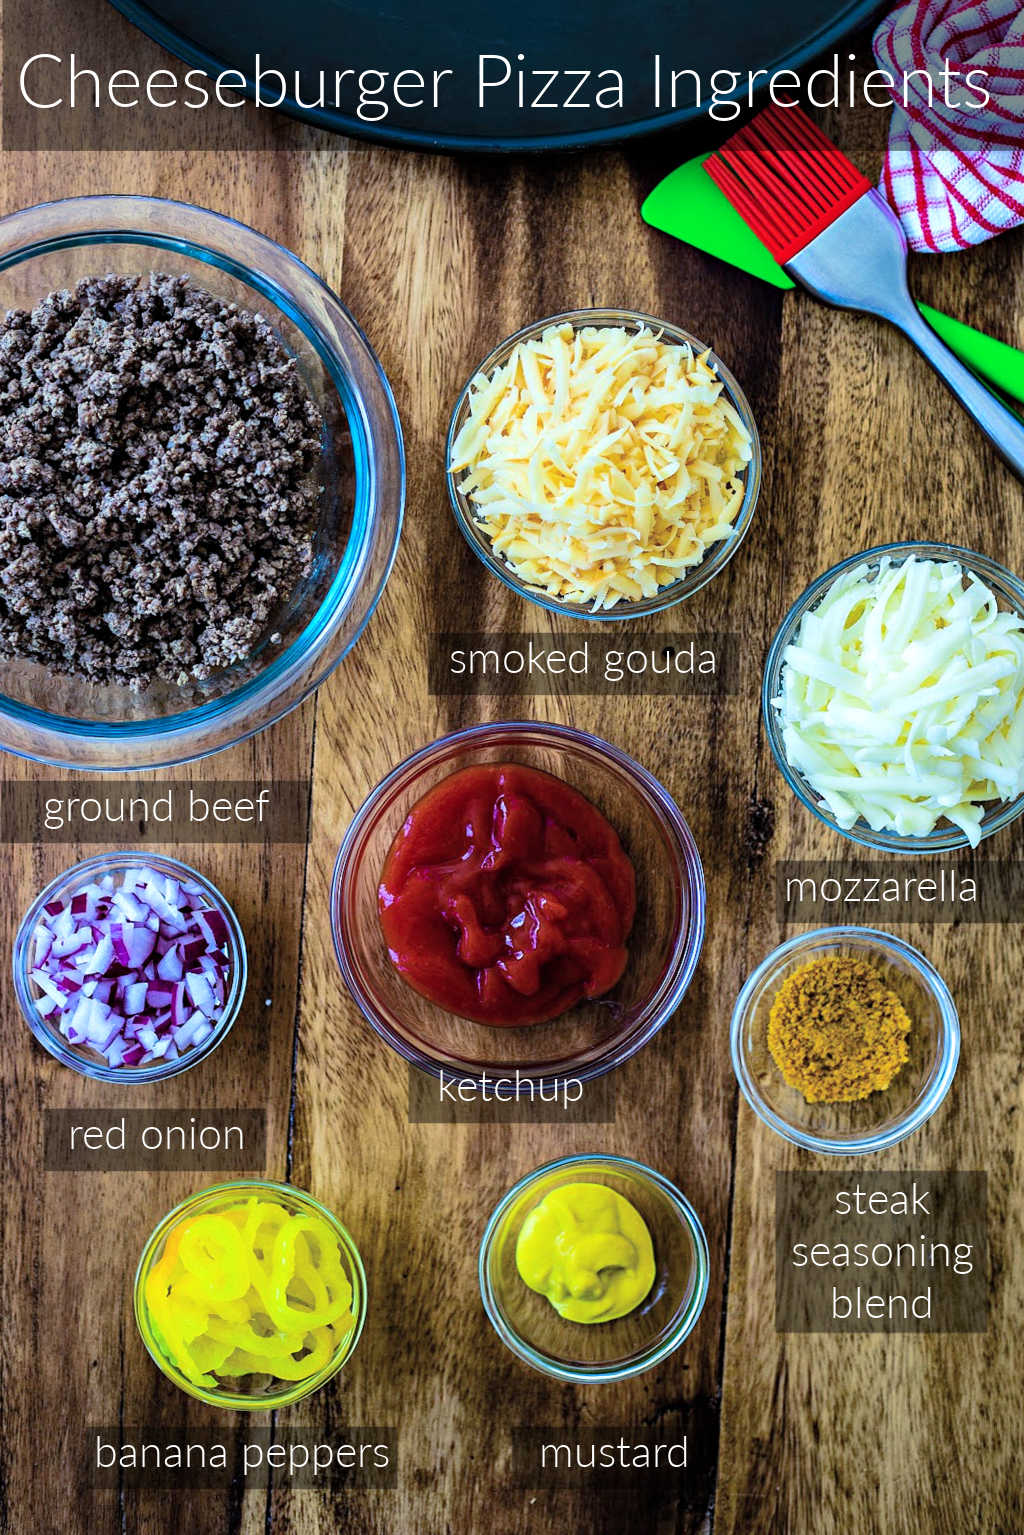 ingredients for cheeseburger pizza